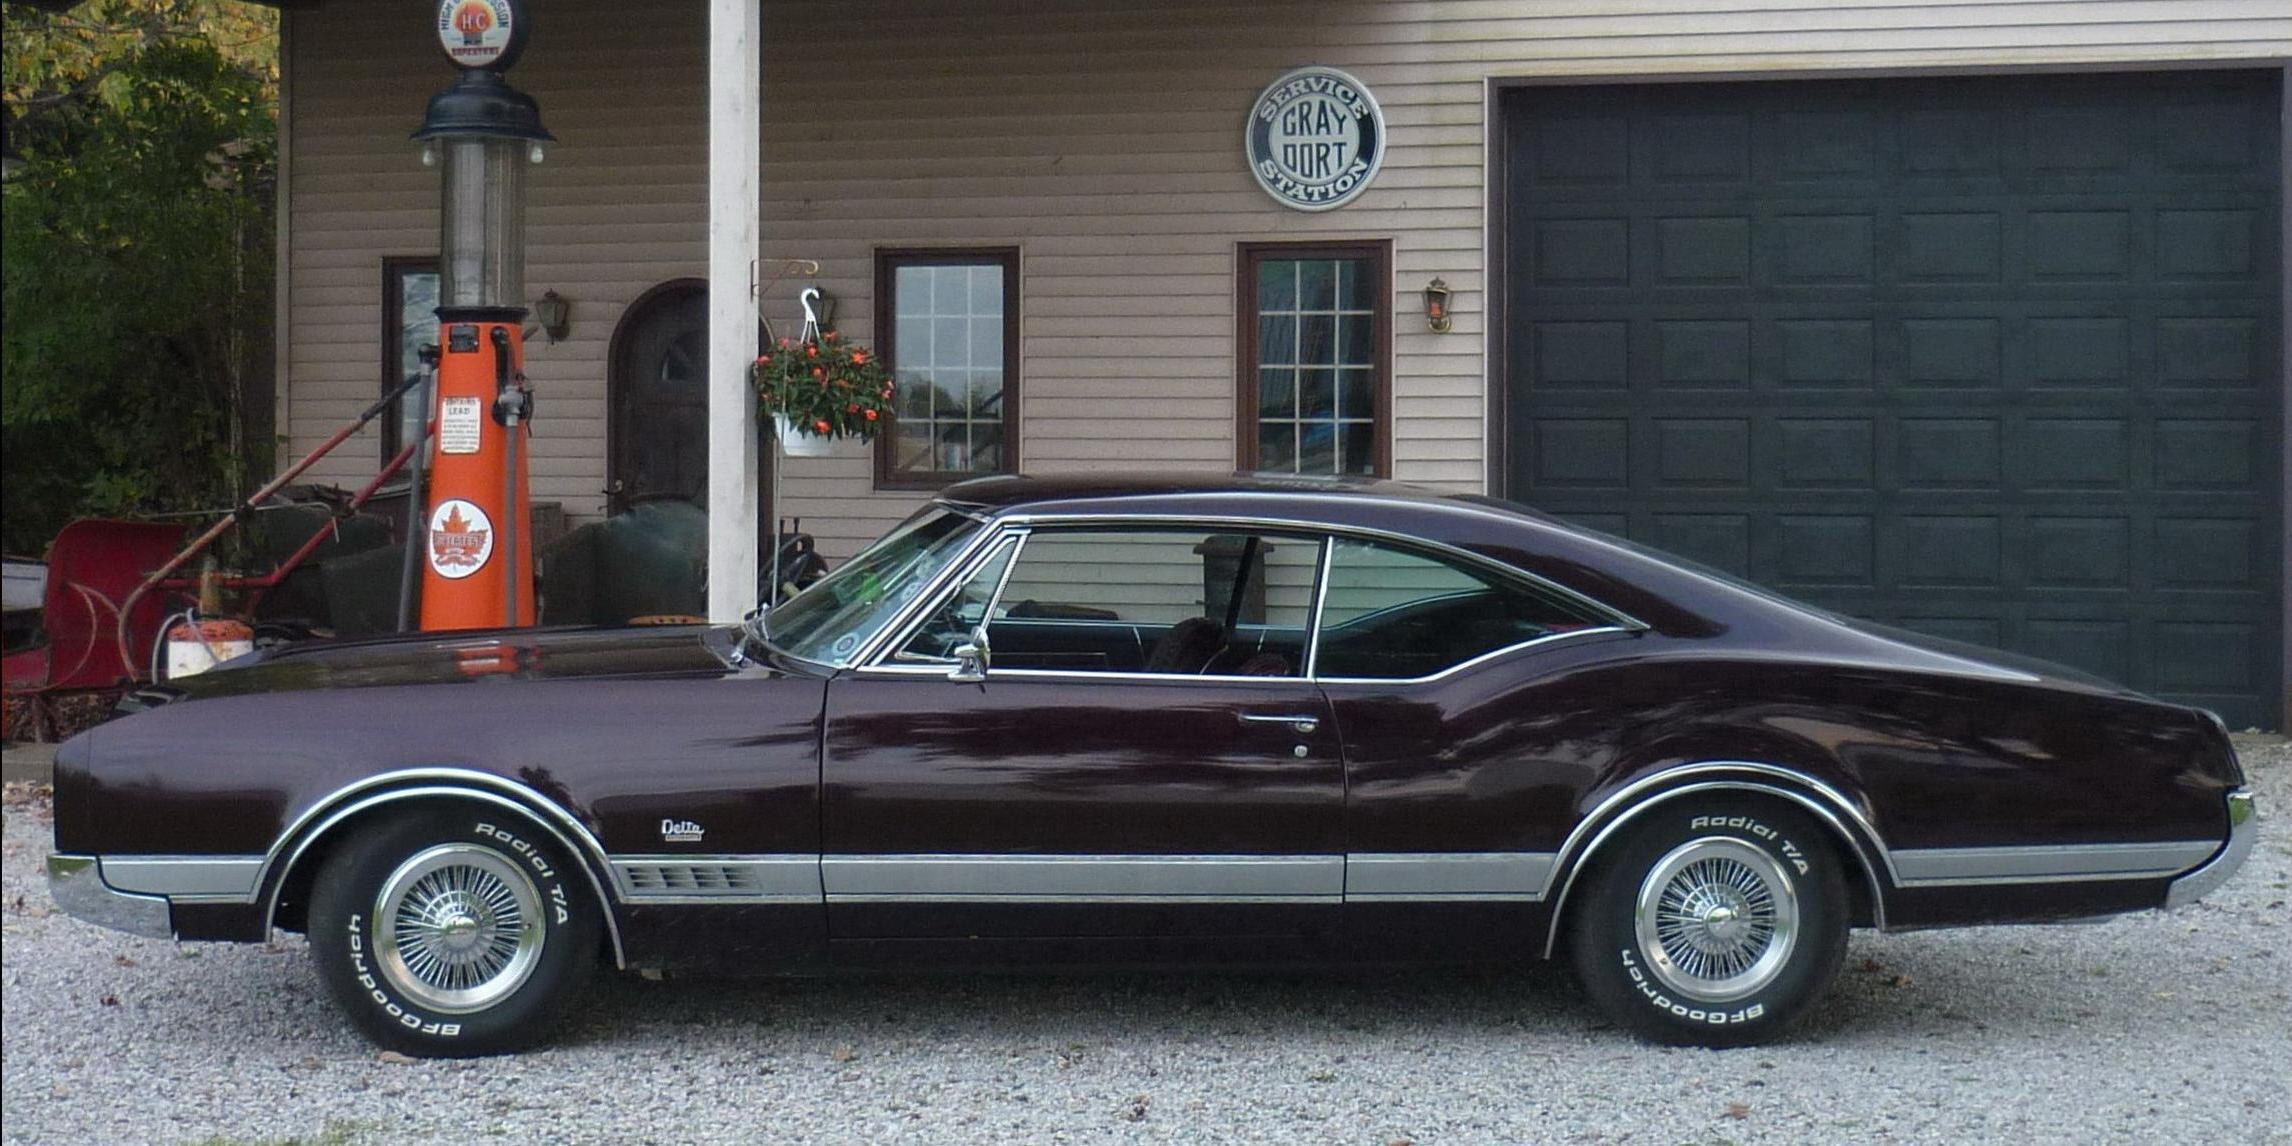 1979 Delta 88 Coupe Pictures to Pin on Pinterest  PinsDaddy